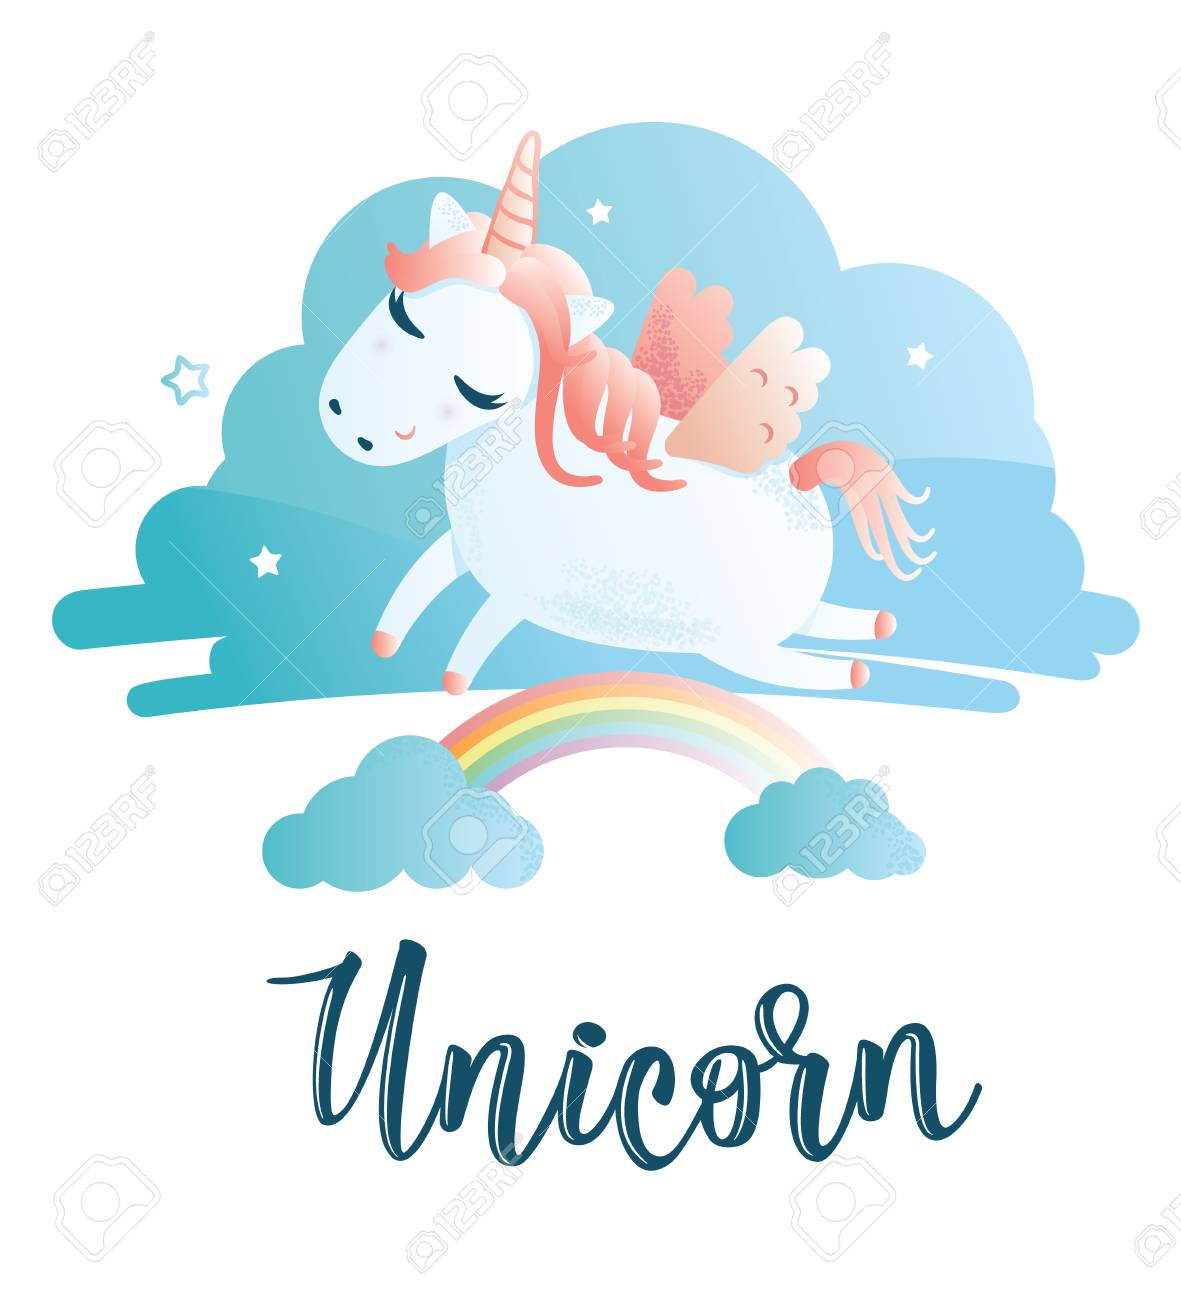 Vector Illustration Of A Cute Unicorn Greeting Card With Unicorn